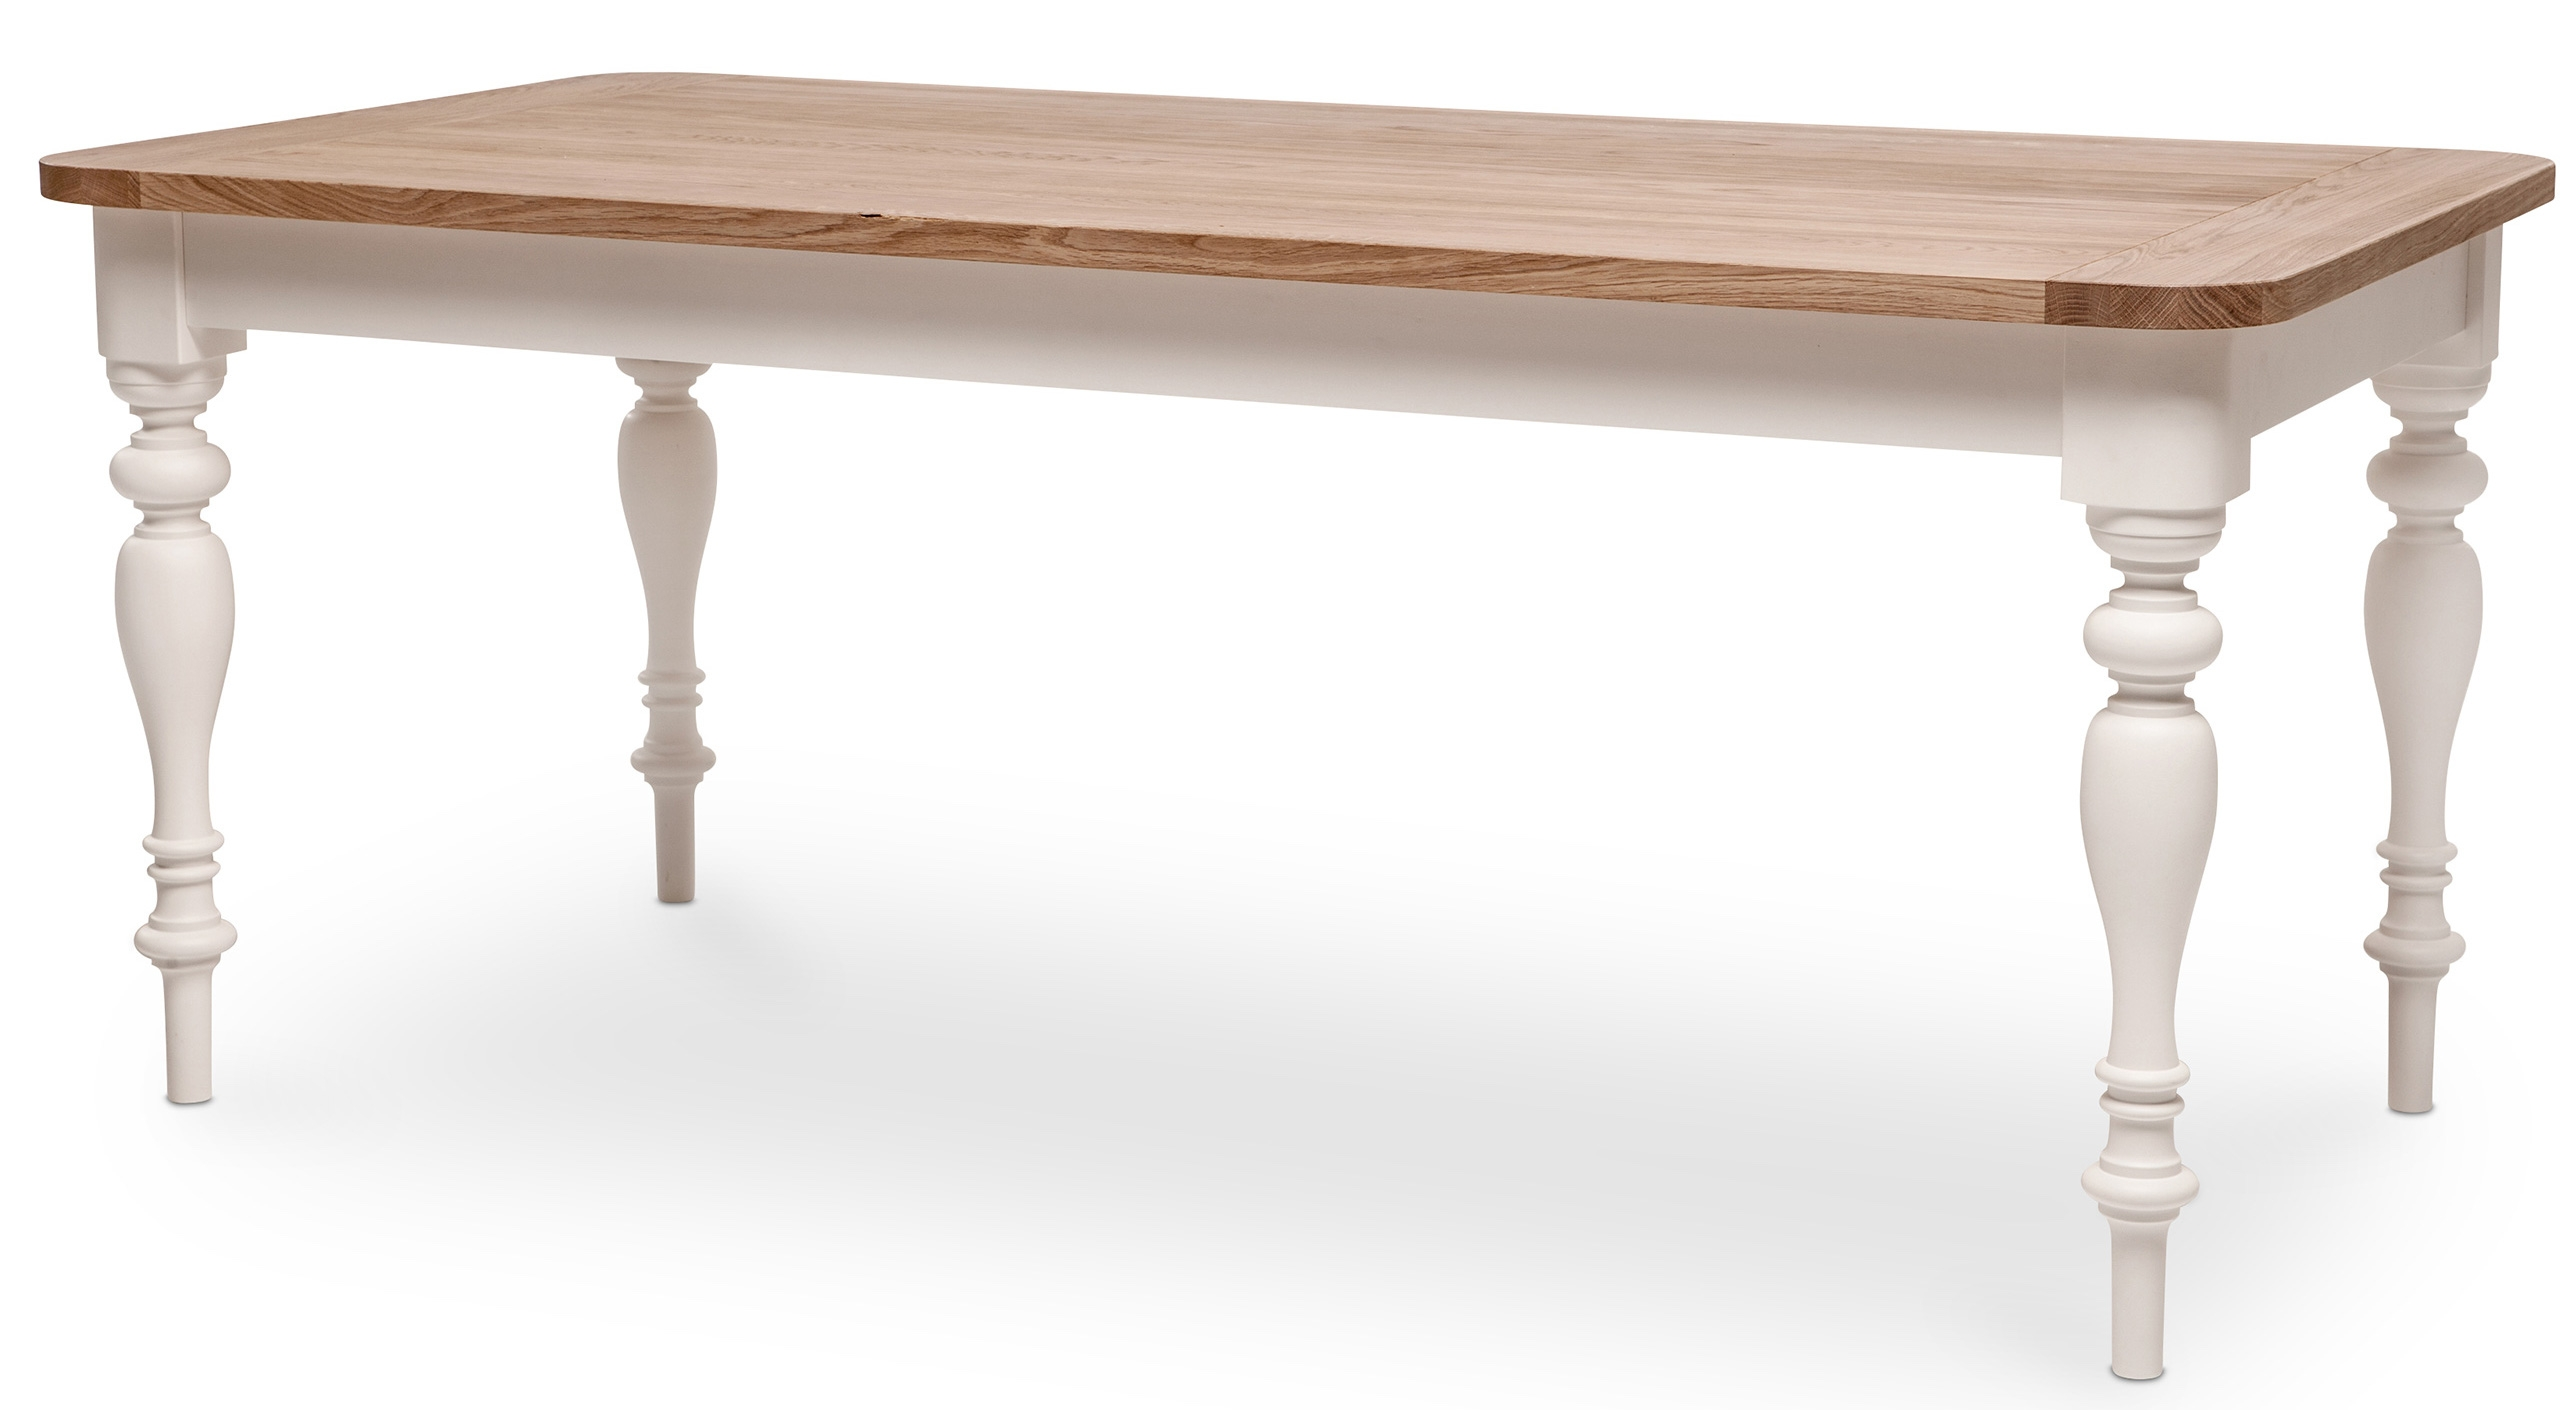 Table a manger bois massif table manger design industriel for Table salle a manger extensible bois massif